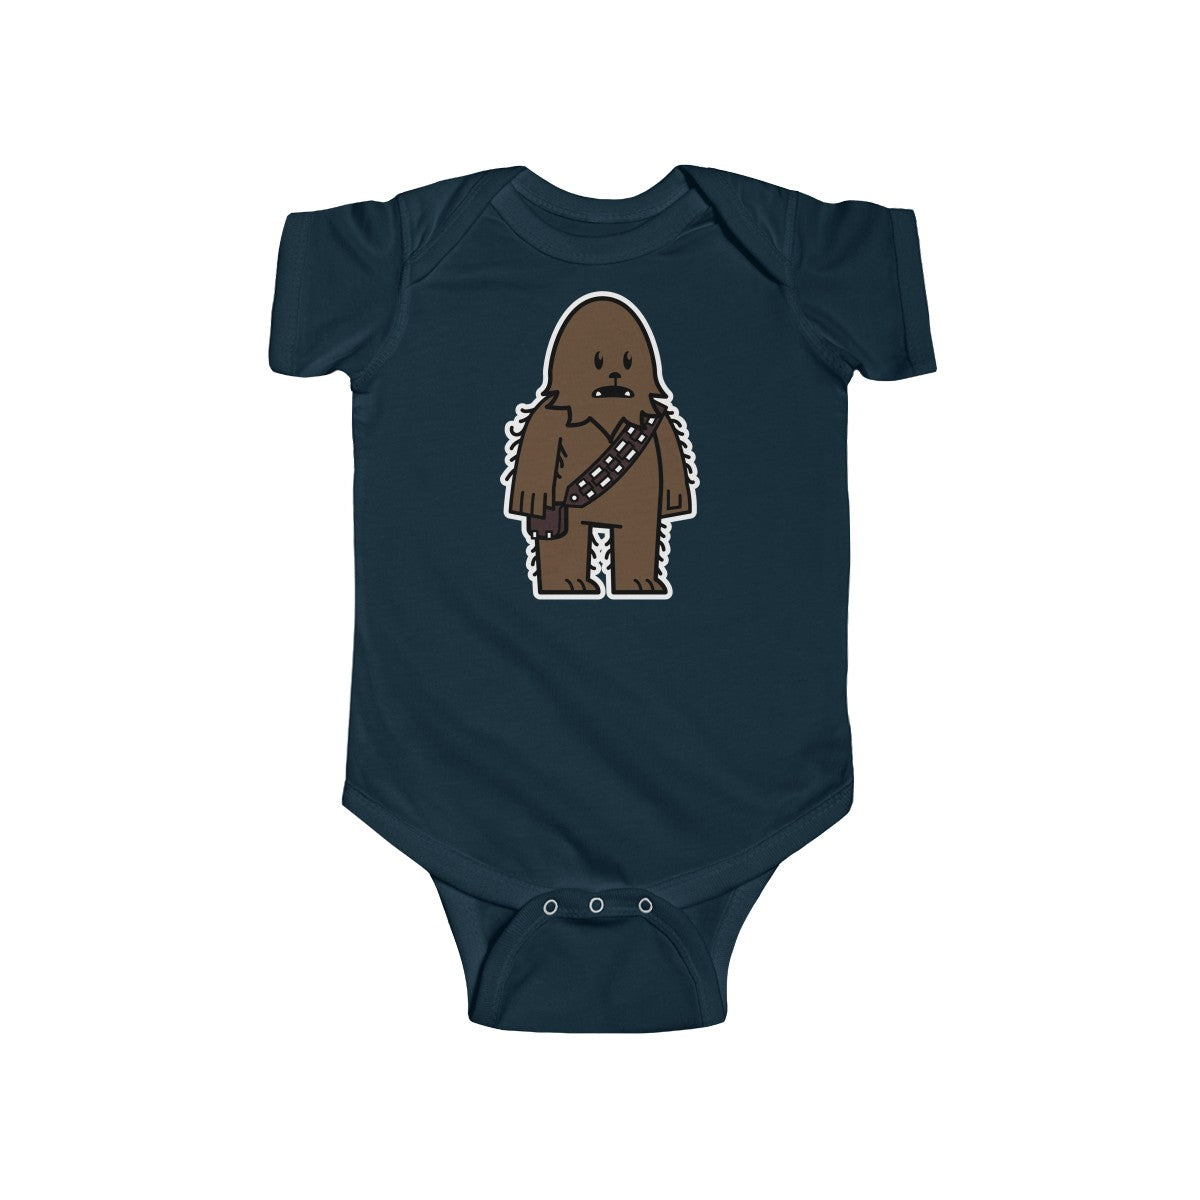 2674e2d96 Mitesized Wookie Chewbacca baby onesie in navy blue ...